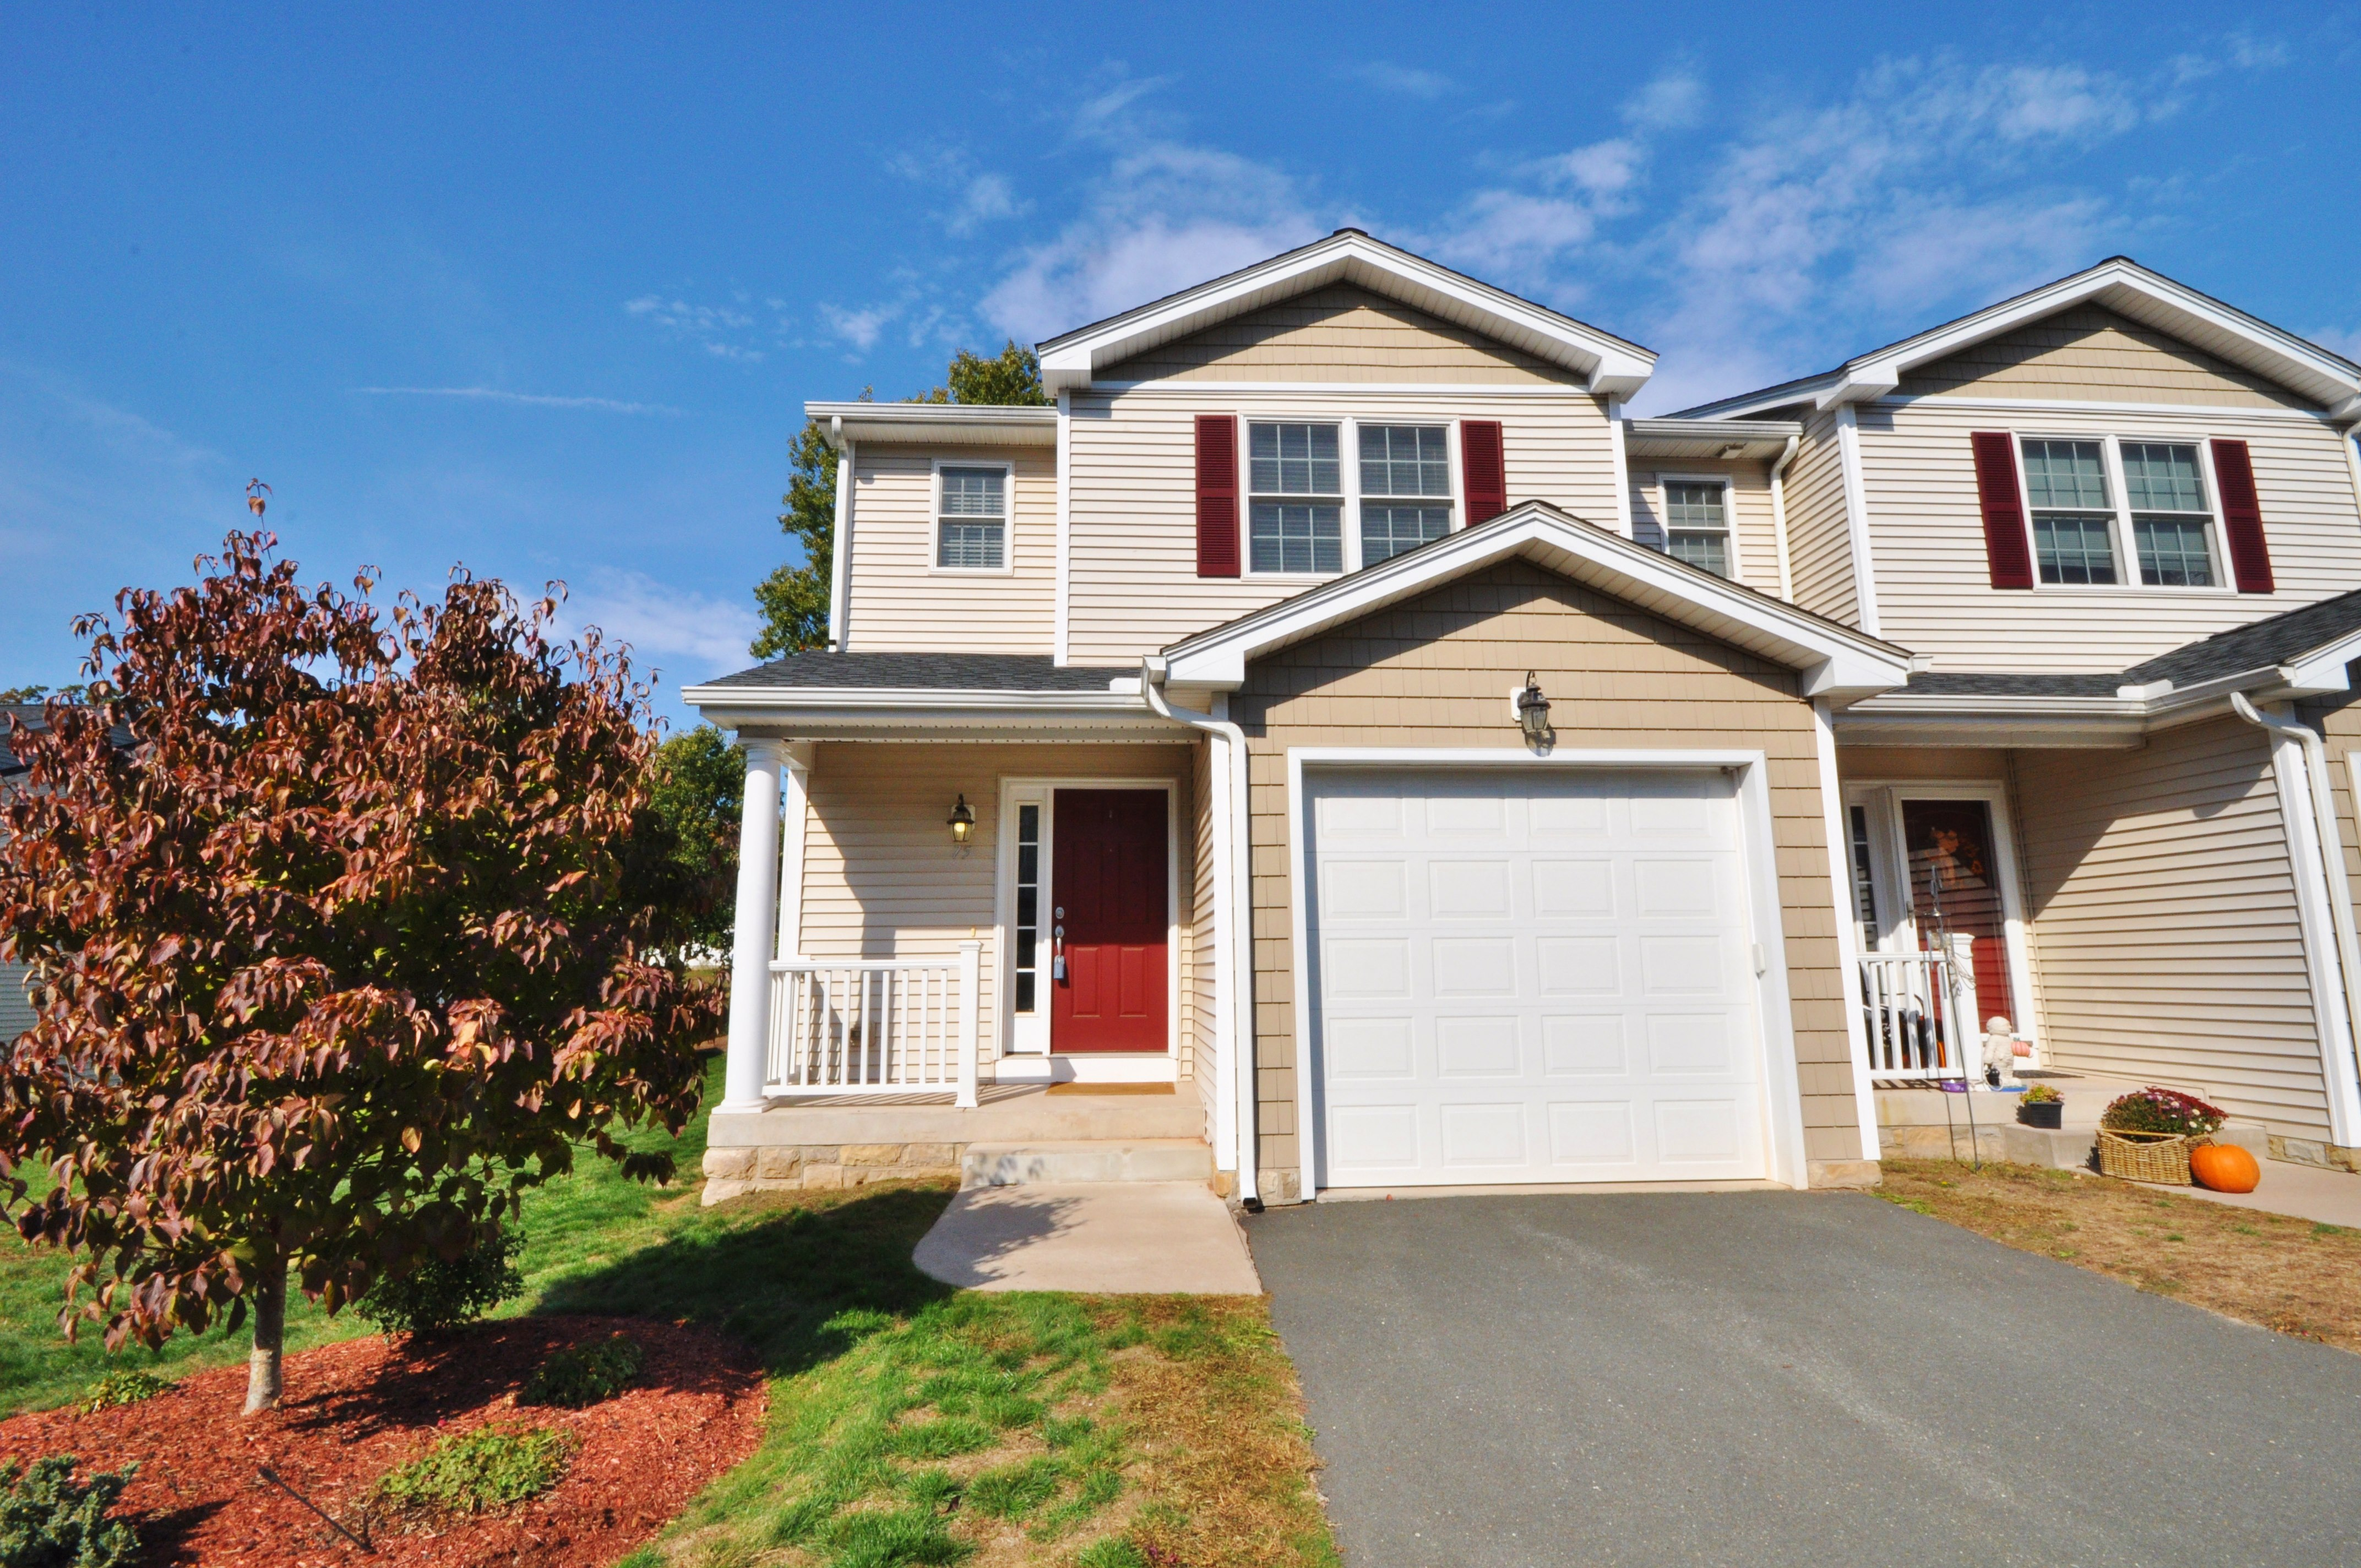 75 Gianna Dr #75, Manchester, CT 06042